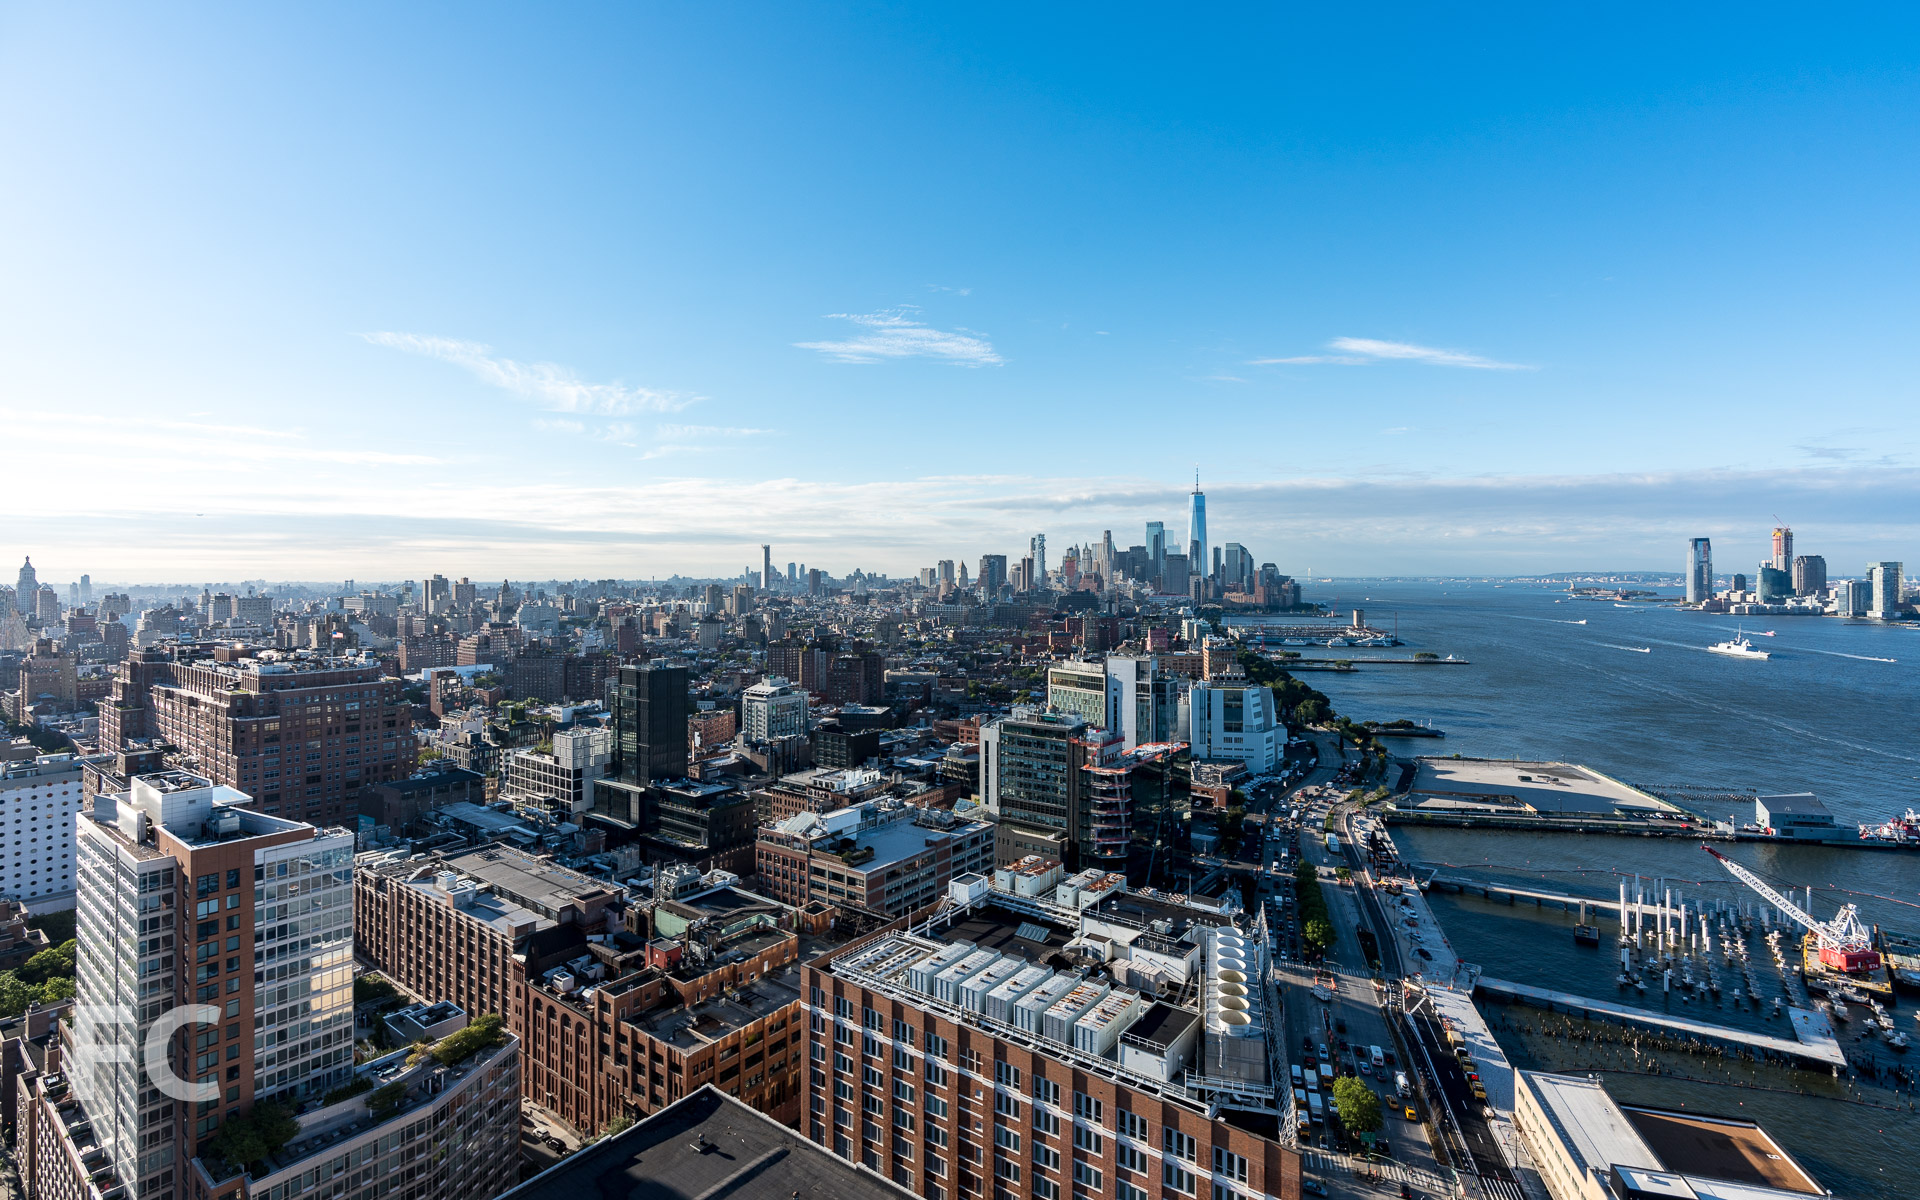 View south towards Chelsea and Lower Manhattan from the rooftop of the west tower.